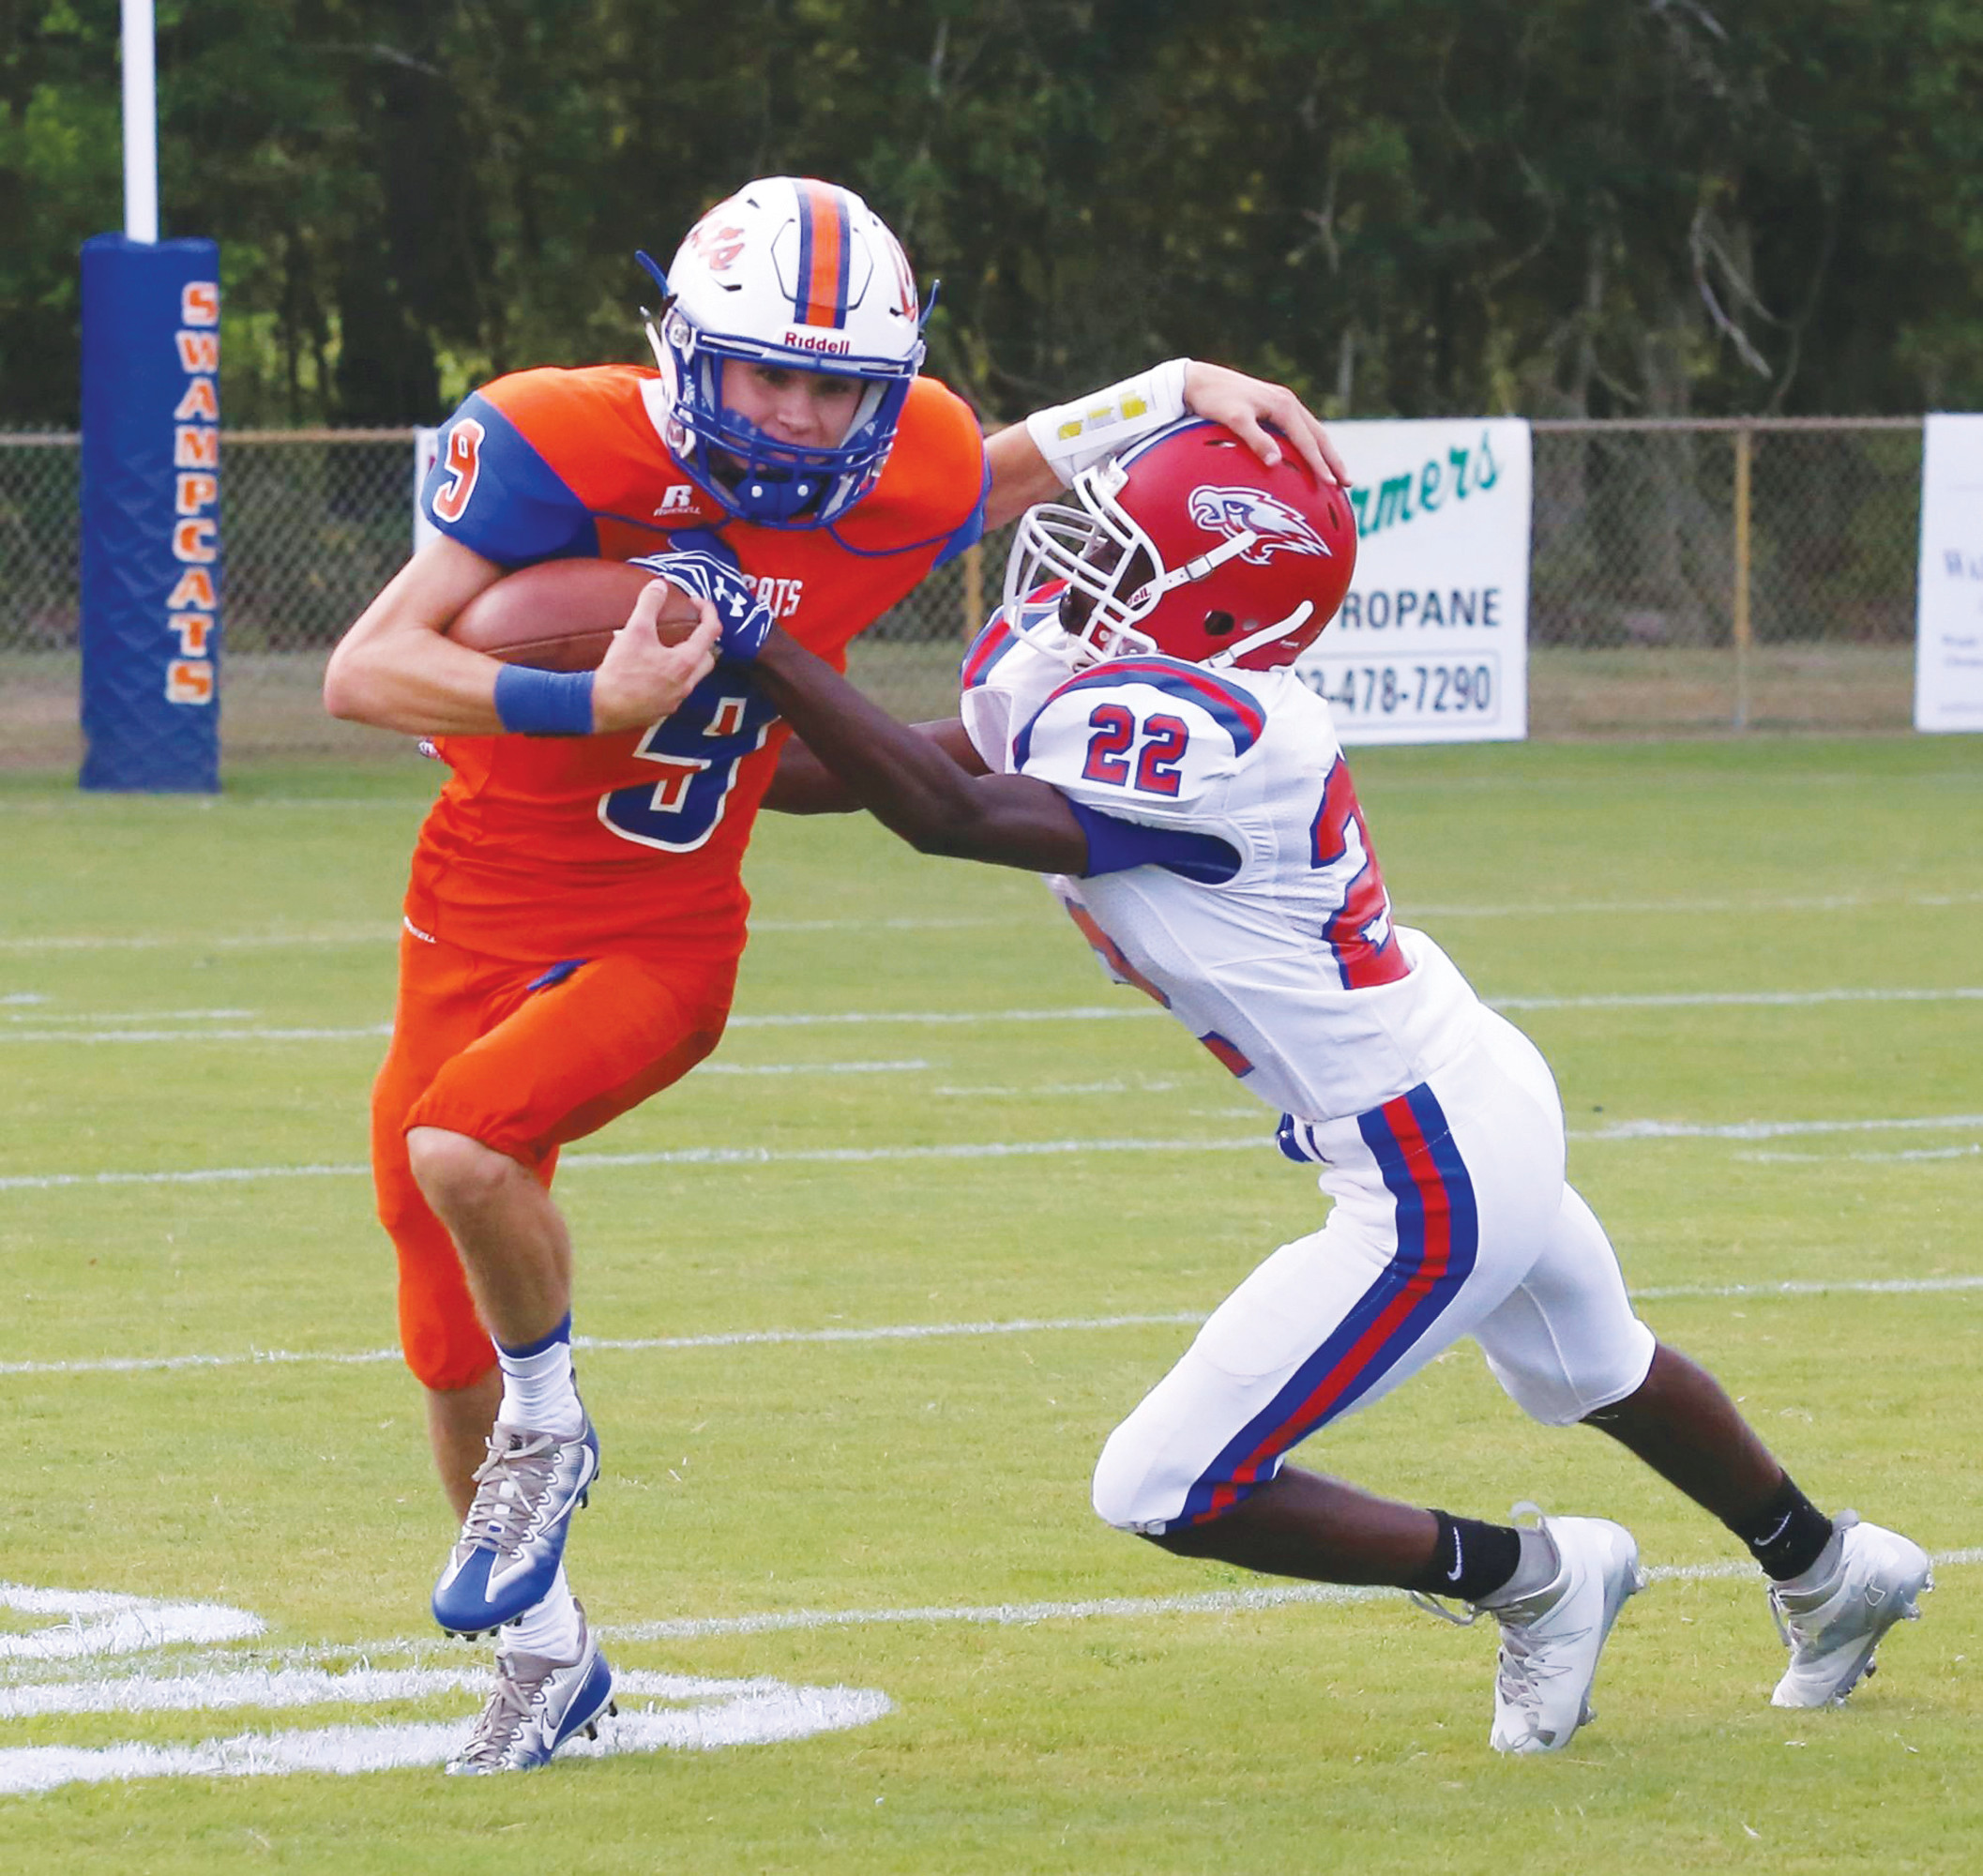 Laurence Manning wide receiver Taylor Lee (9) and the rest of the Swampcats will travel to Sumter today to take on Wilson Hall at Spencer Field beginning at 7:30 p.m.